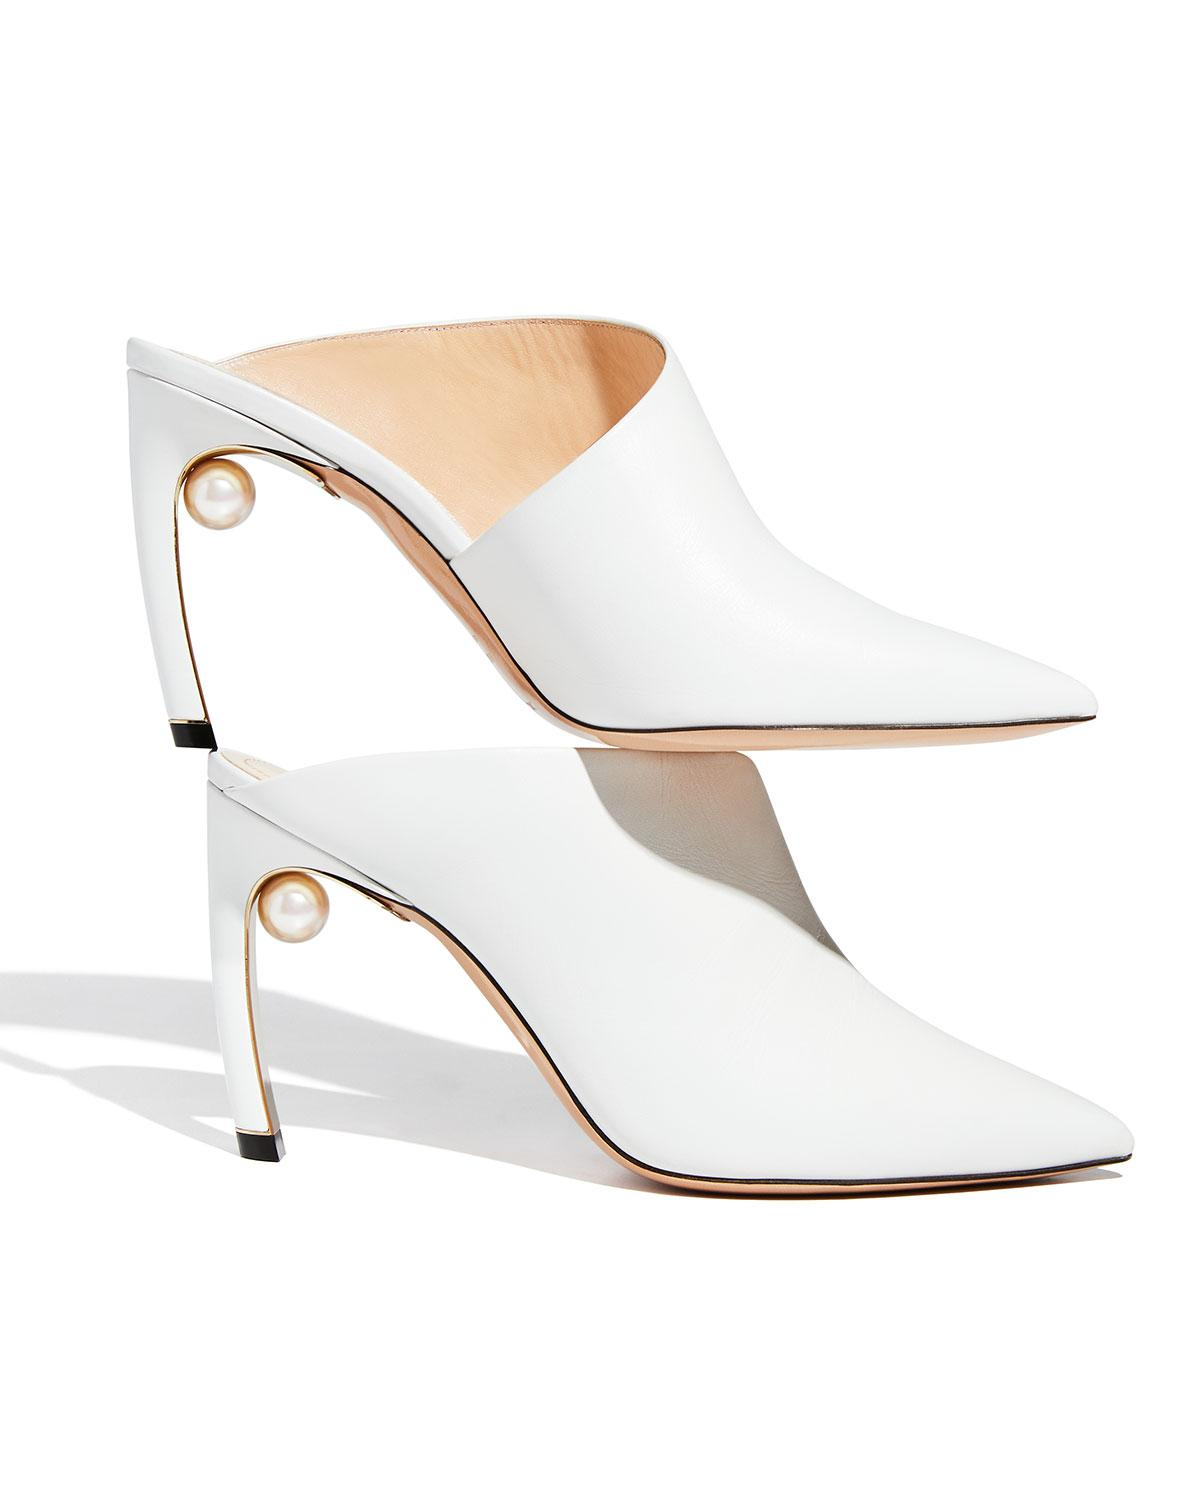 1183e9a3272 Nicholas Kirkwood Mira Pearly Leather 90mm Mule Pump in White - Lyst